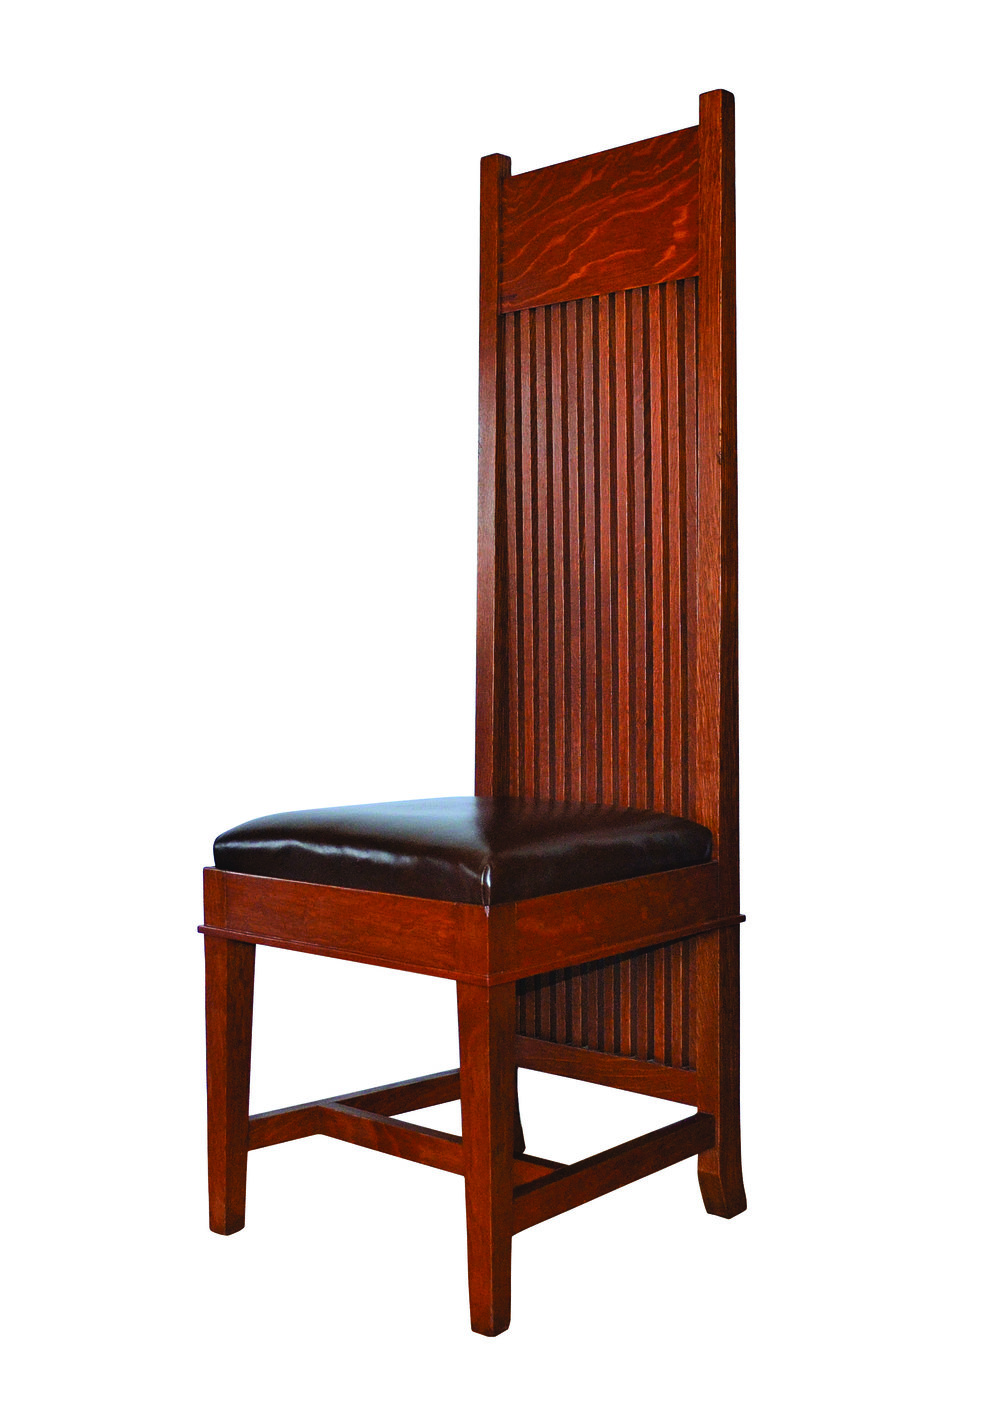 Wright Chair 7_v2.jpg